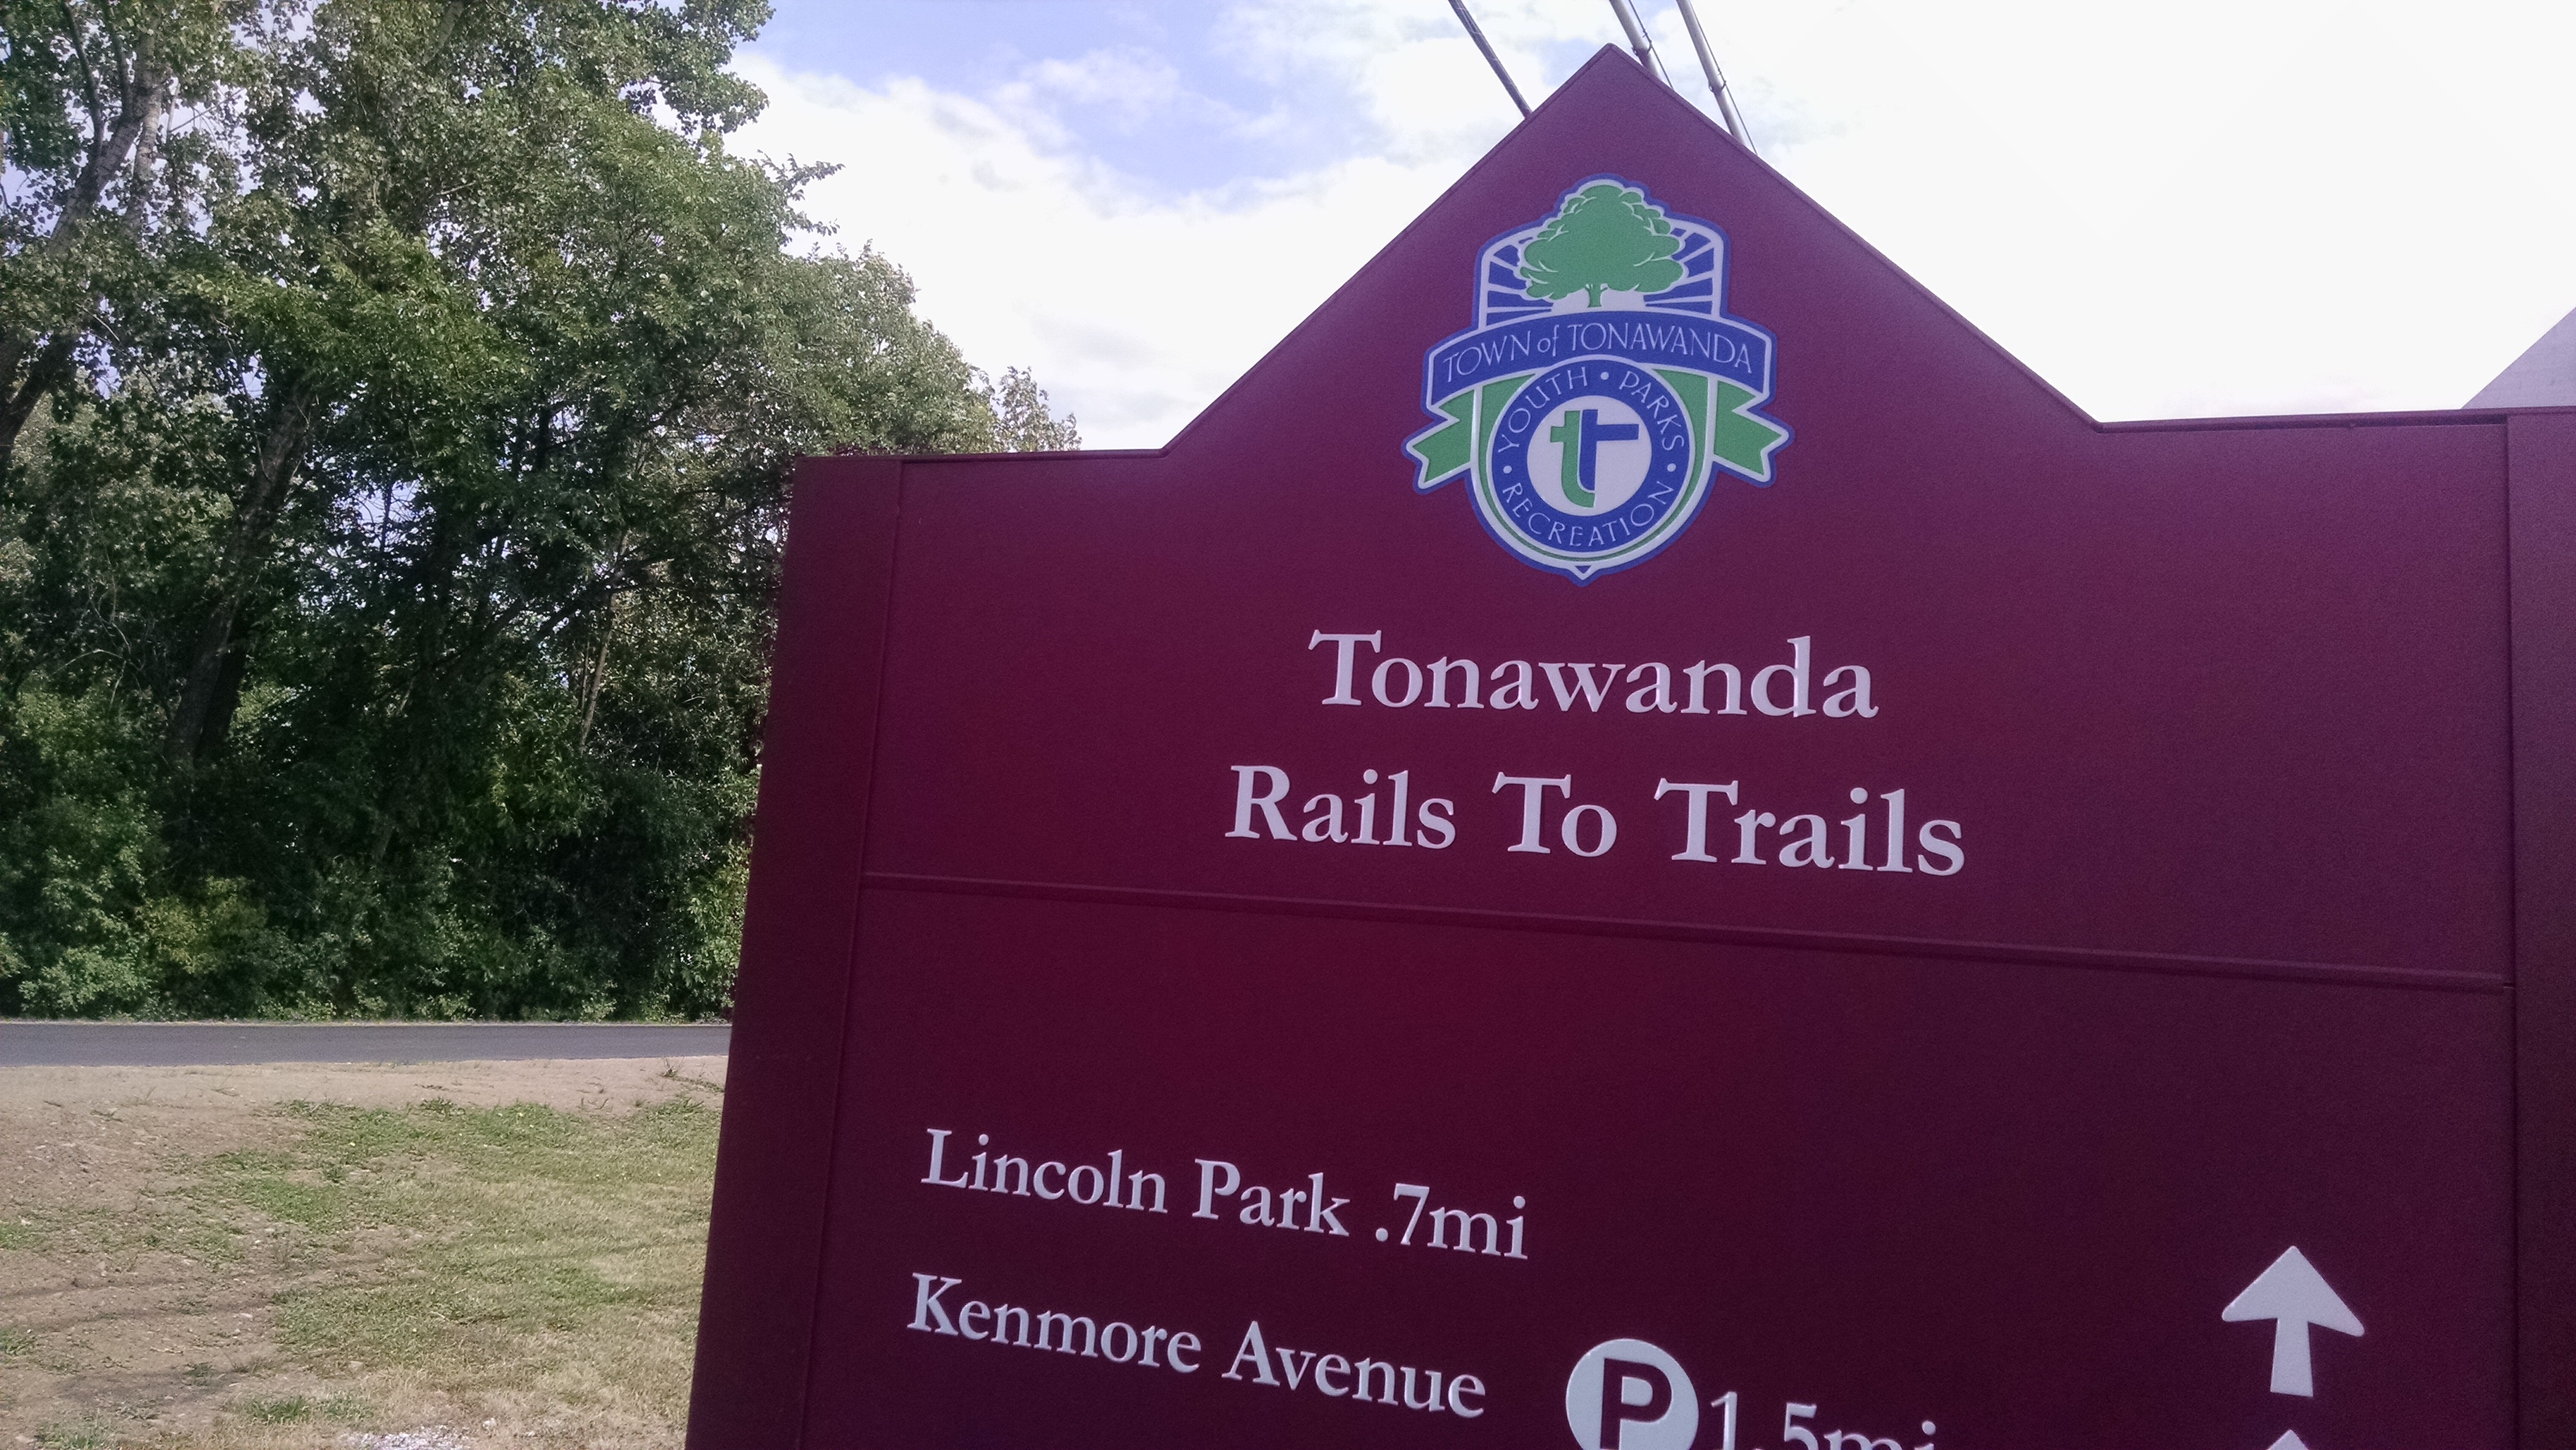 The Tonawanda Rails to Trails is a 4-mile paved path for recreation and commuting.